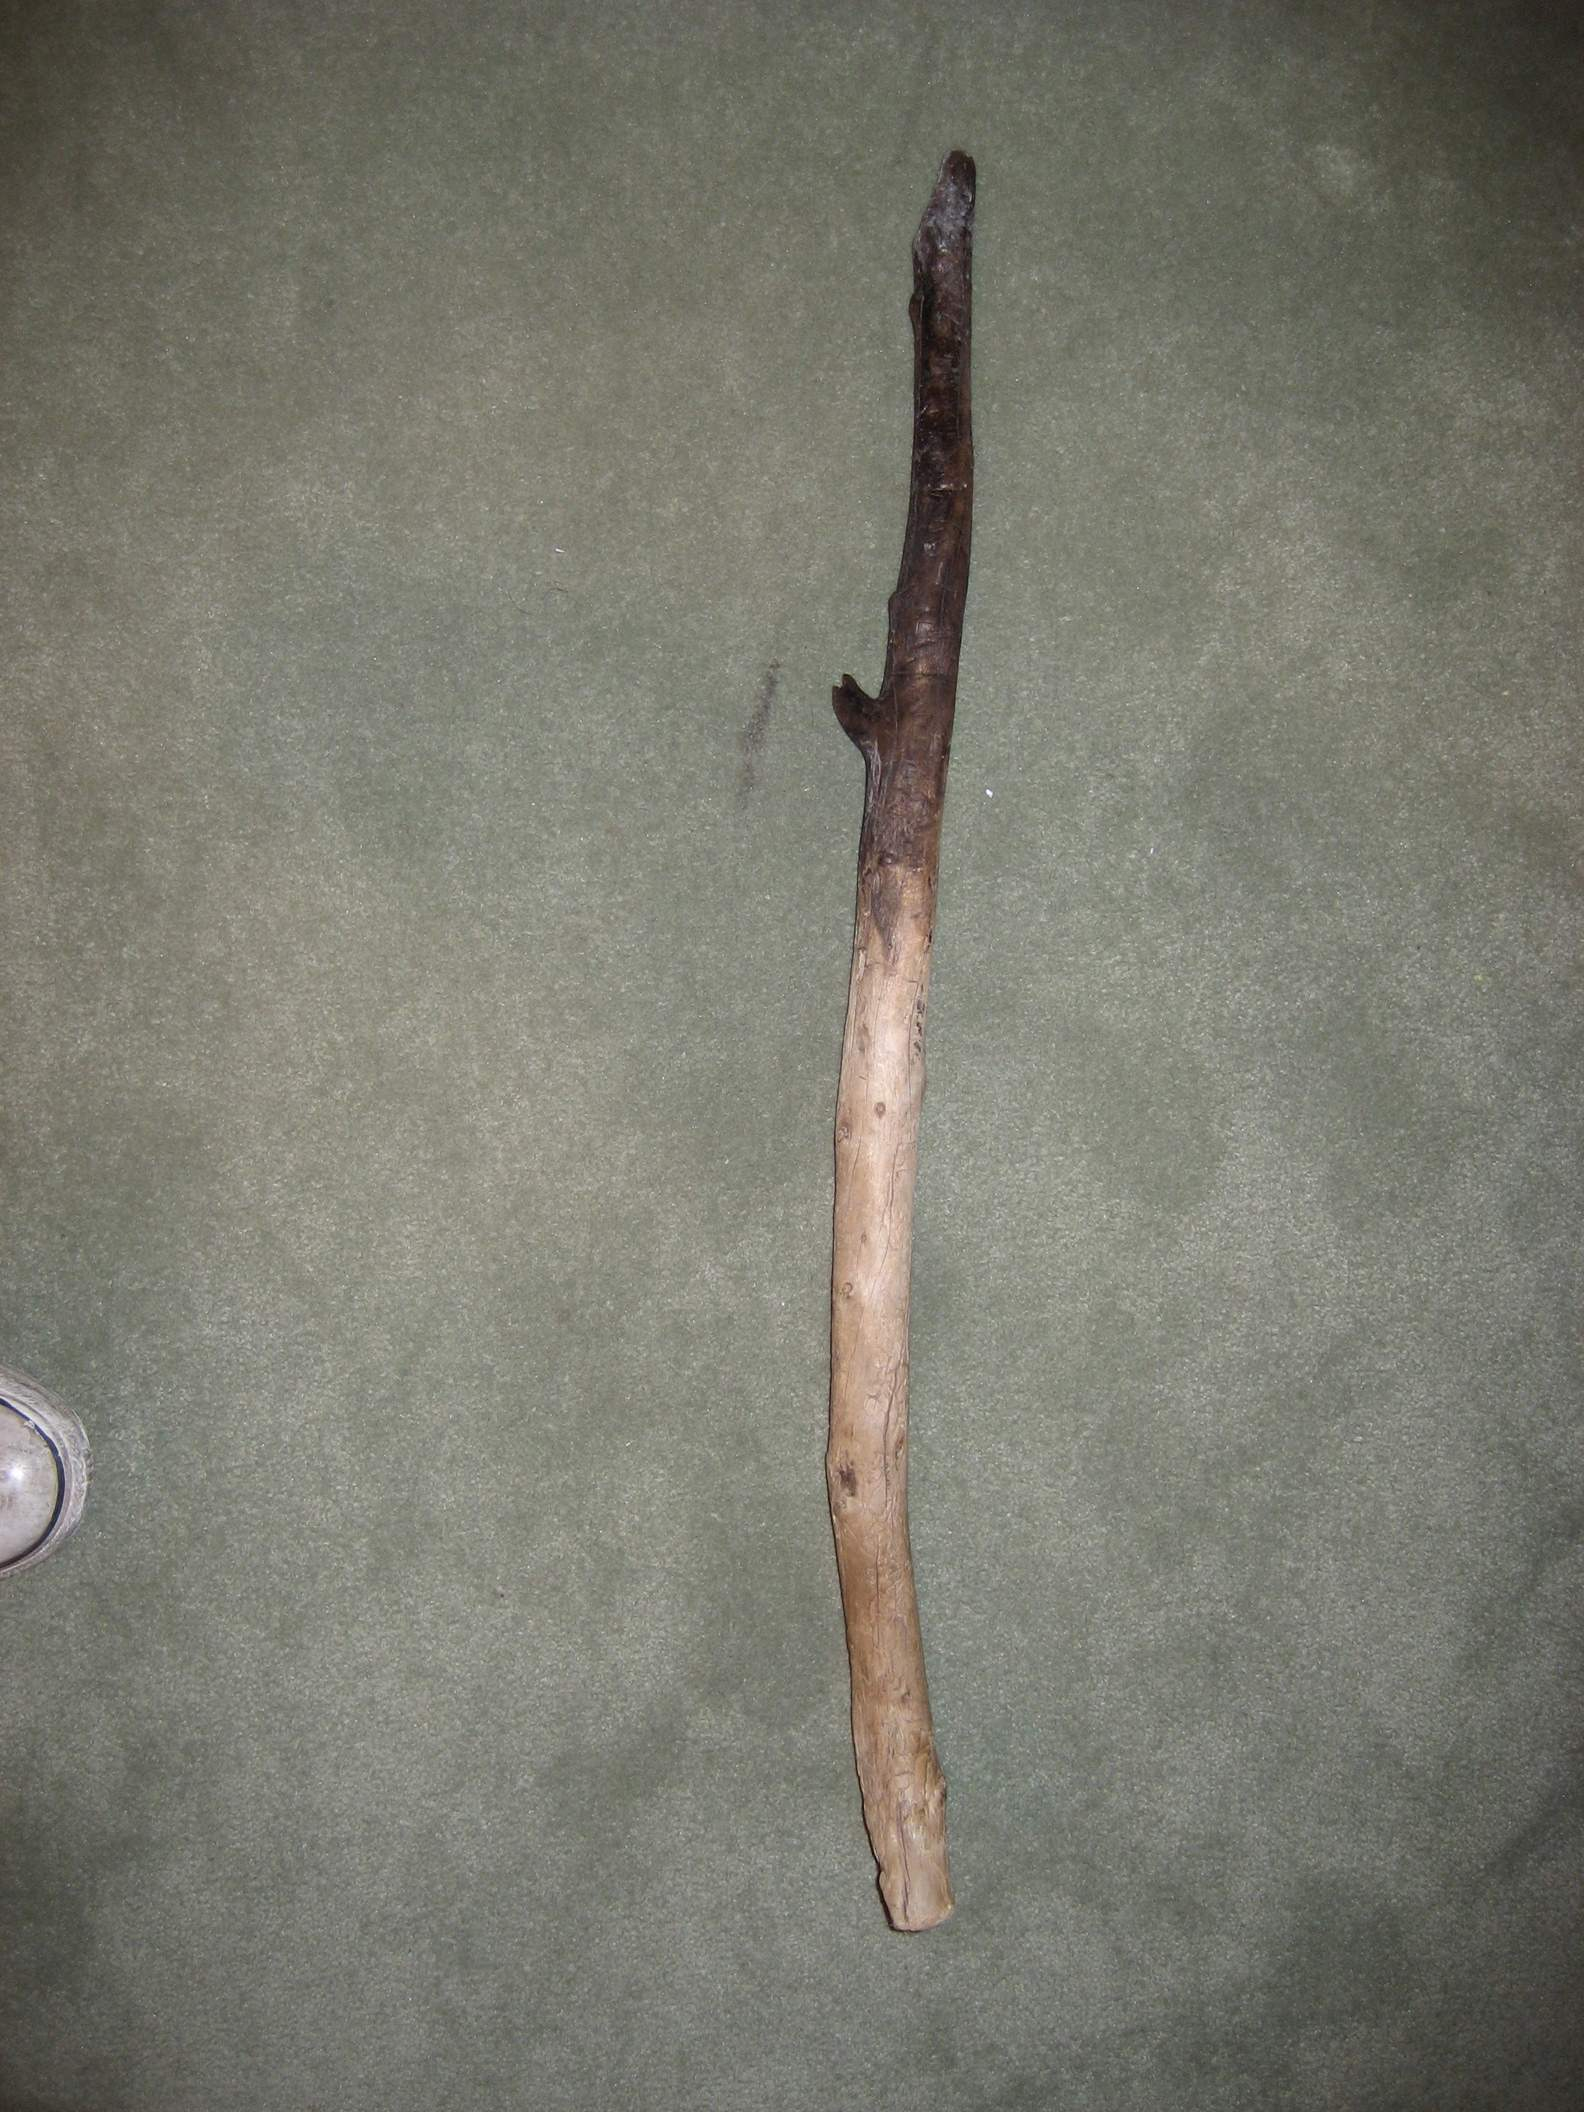 camping stick from Yellowstone